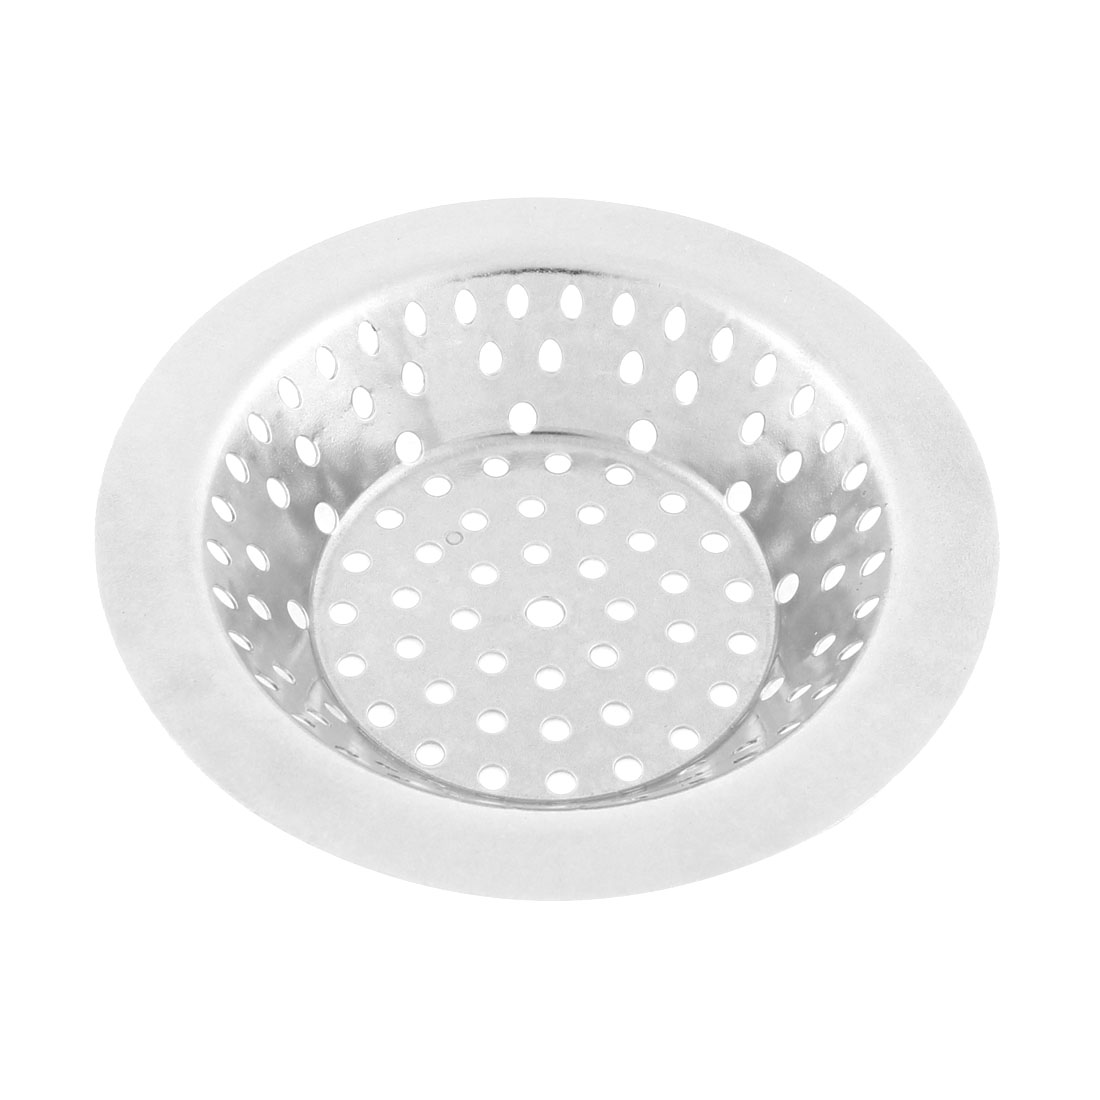 Kitchen Stainless Steel Sink Strainer Drainer Filter Stopper 106mm Dia